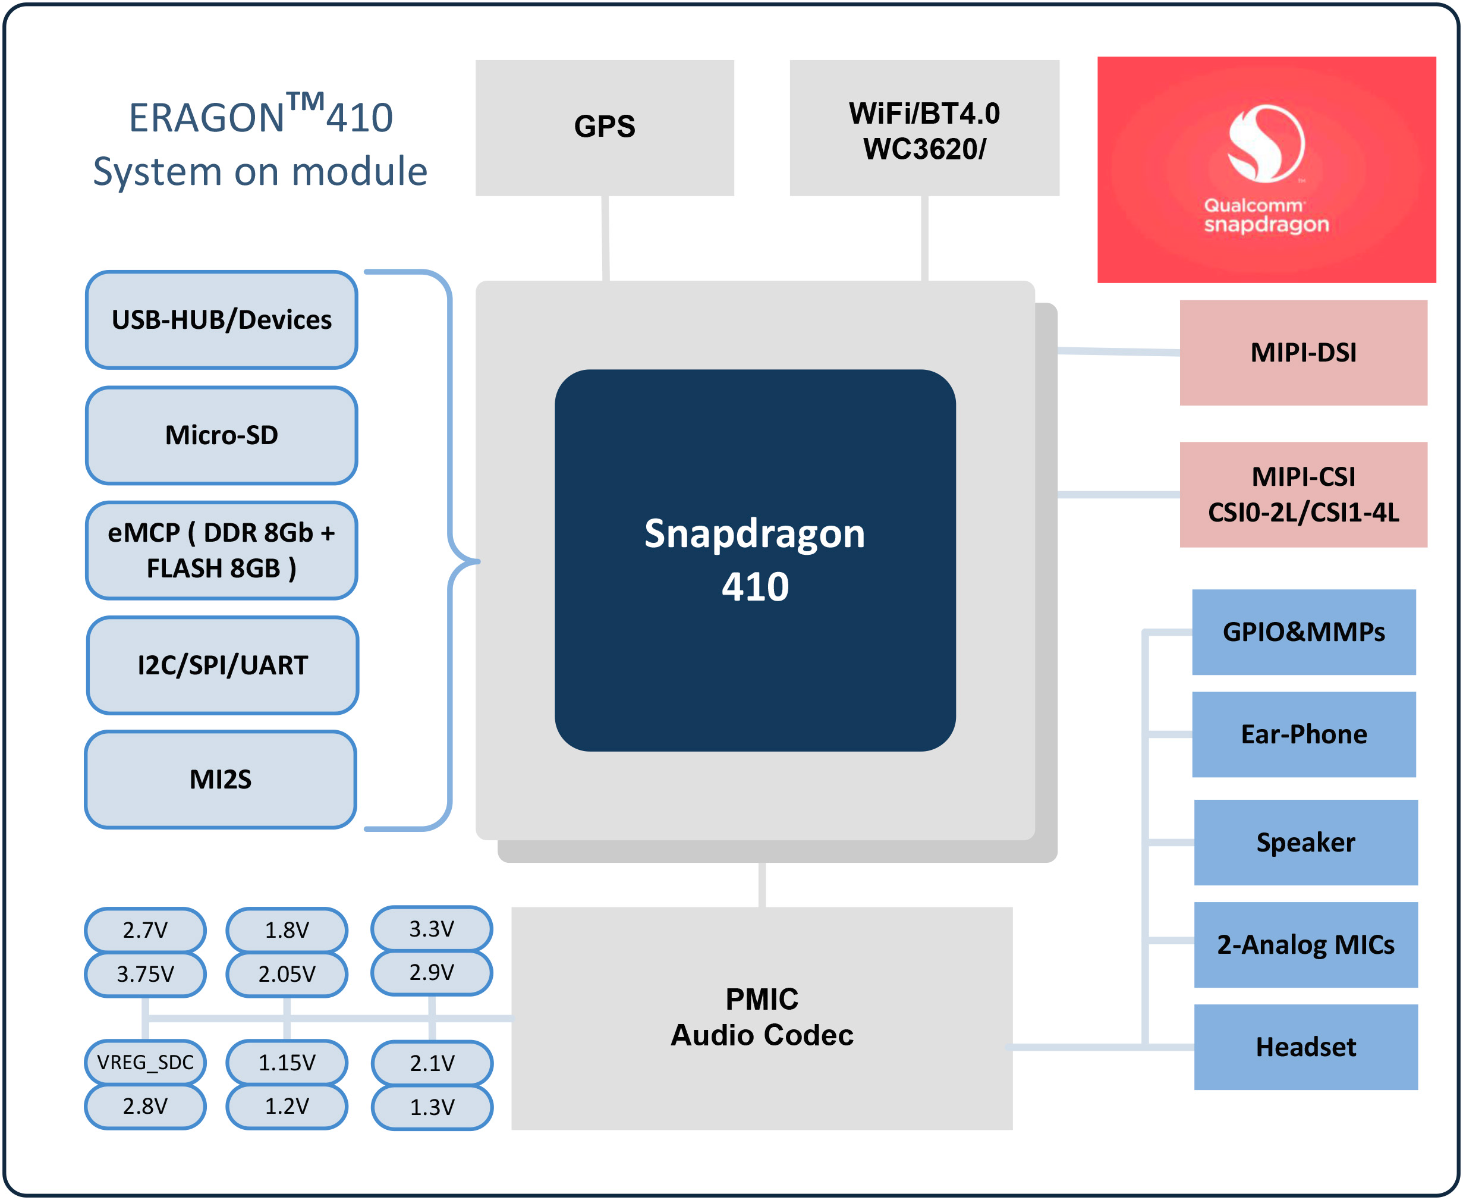 Eragon 410 Snapdragon Som Apq8016 Support For Qualcomm H 261 Block Diagram Documentation